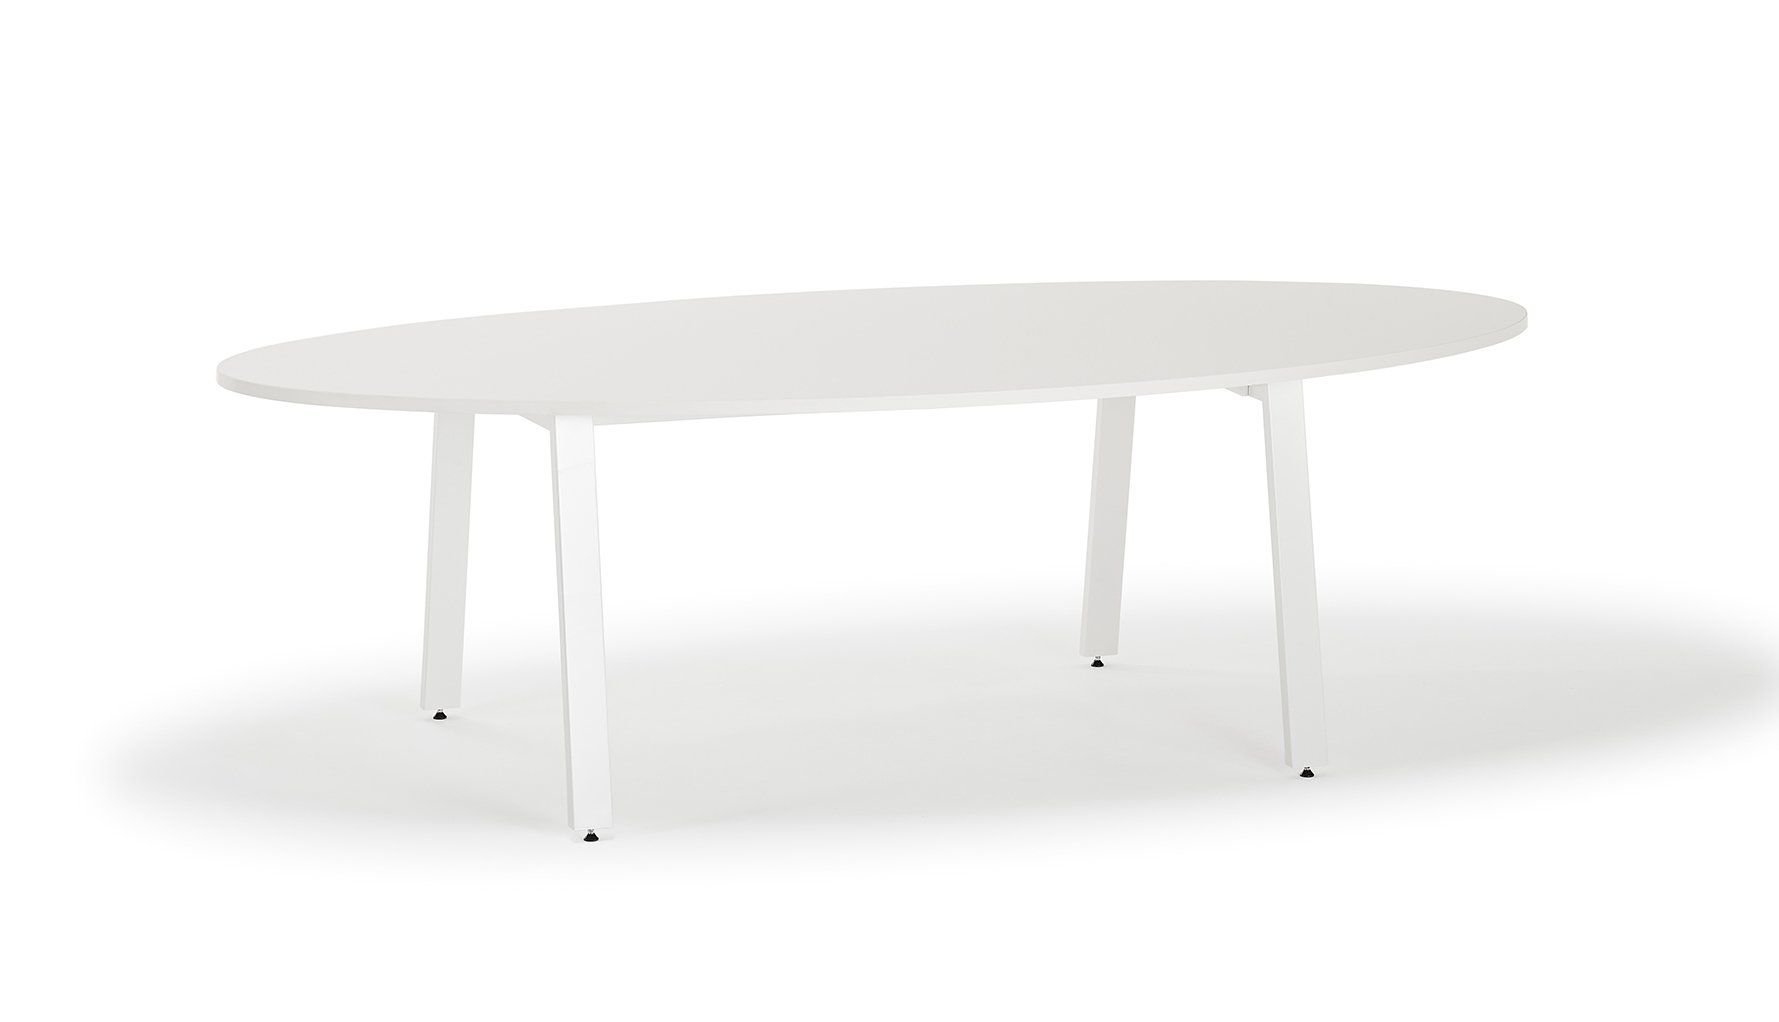 Picture of: White Oval Boardroom Table With White Angled Legs